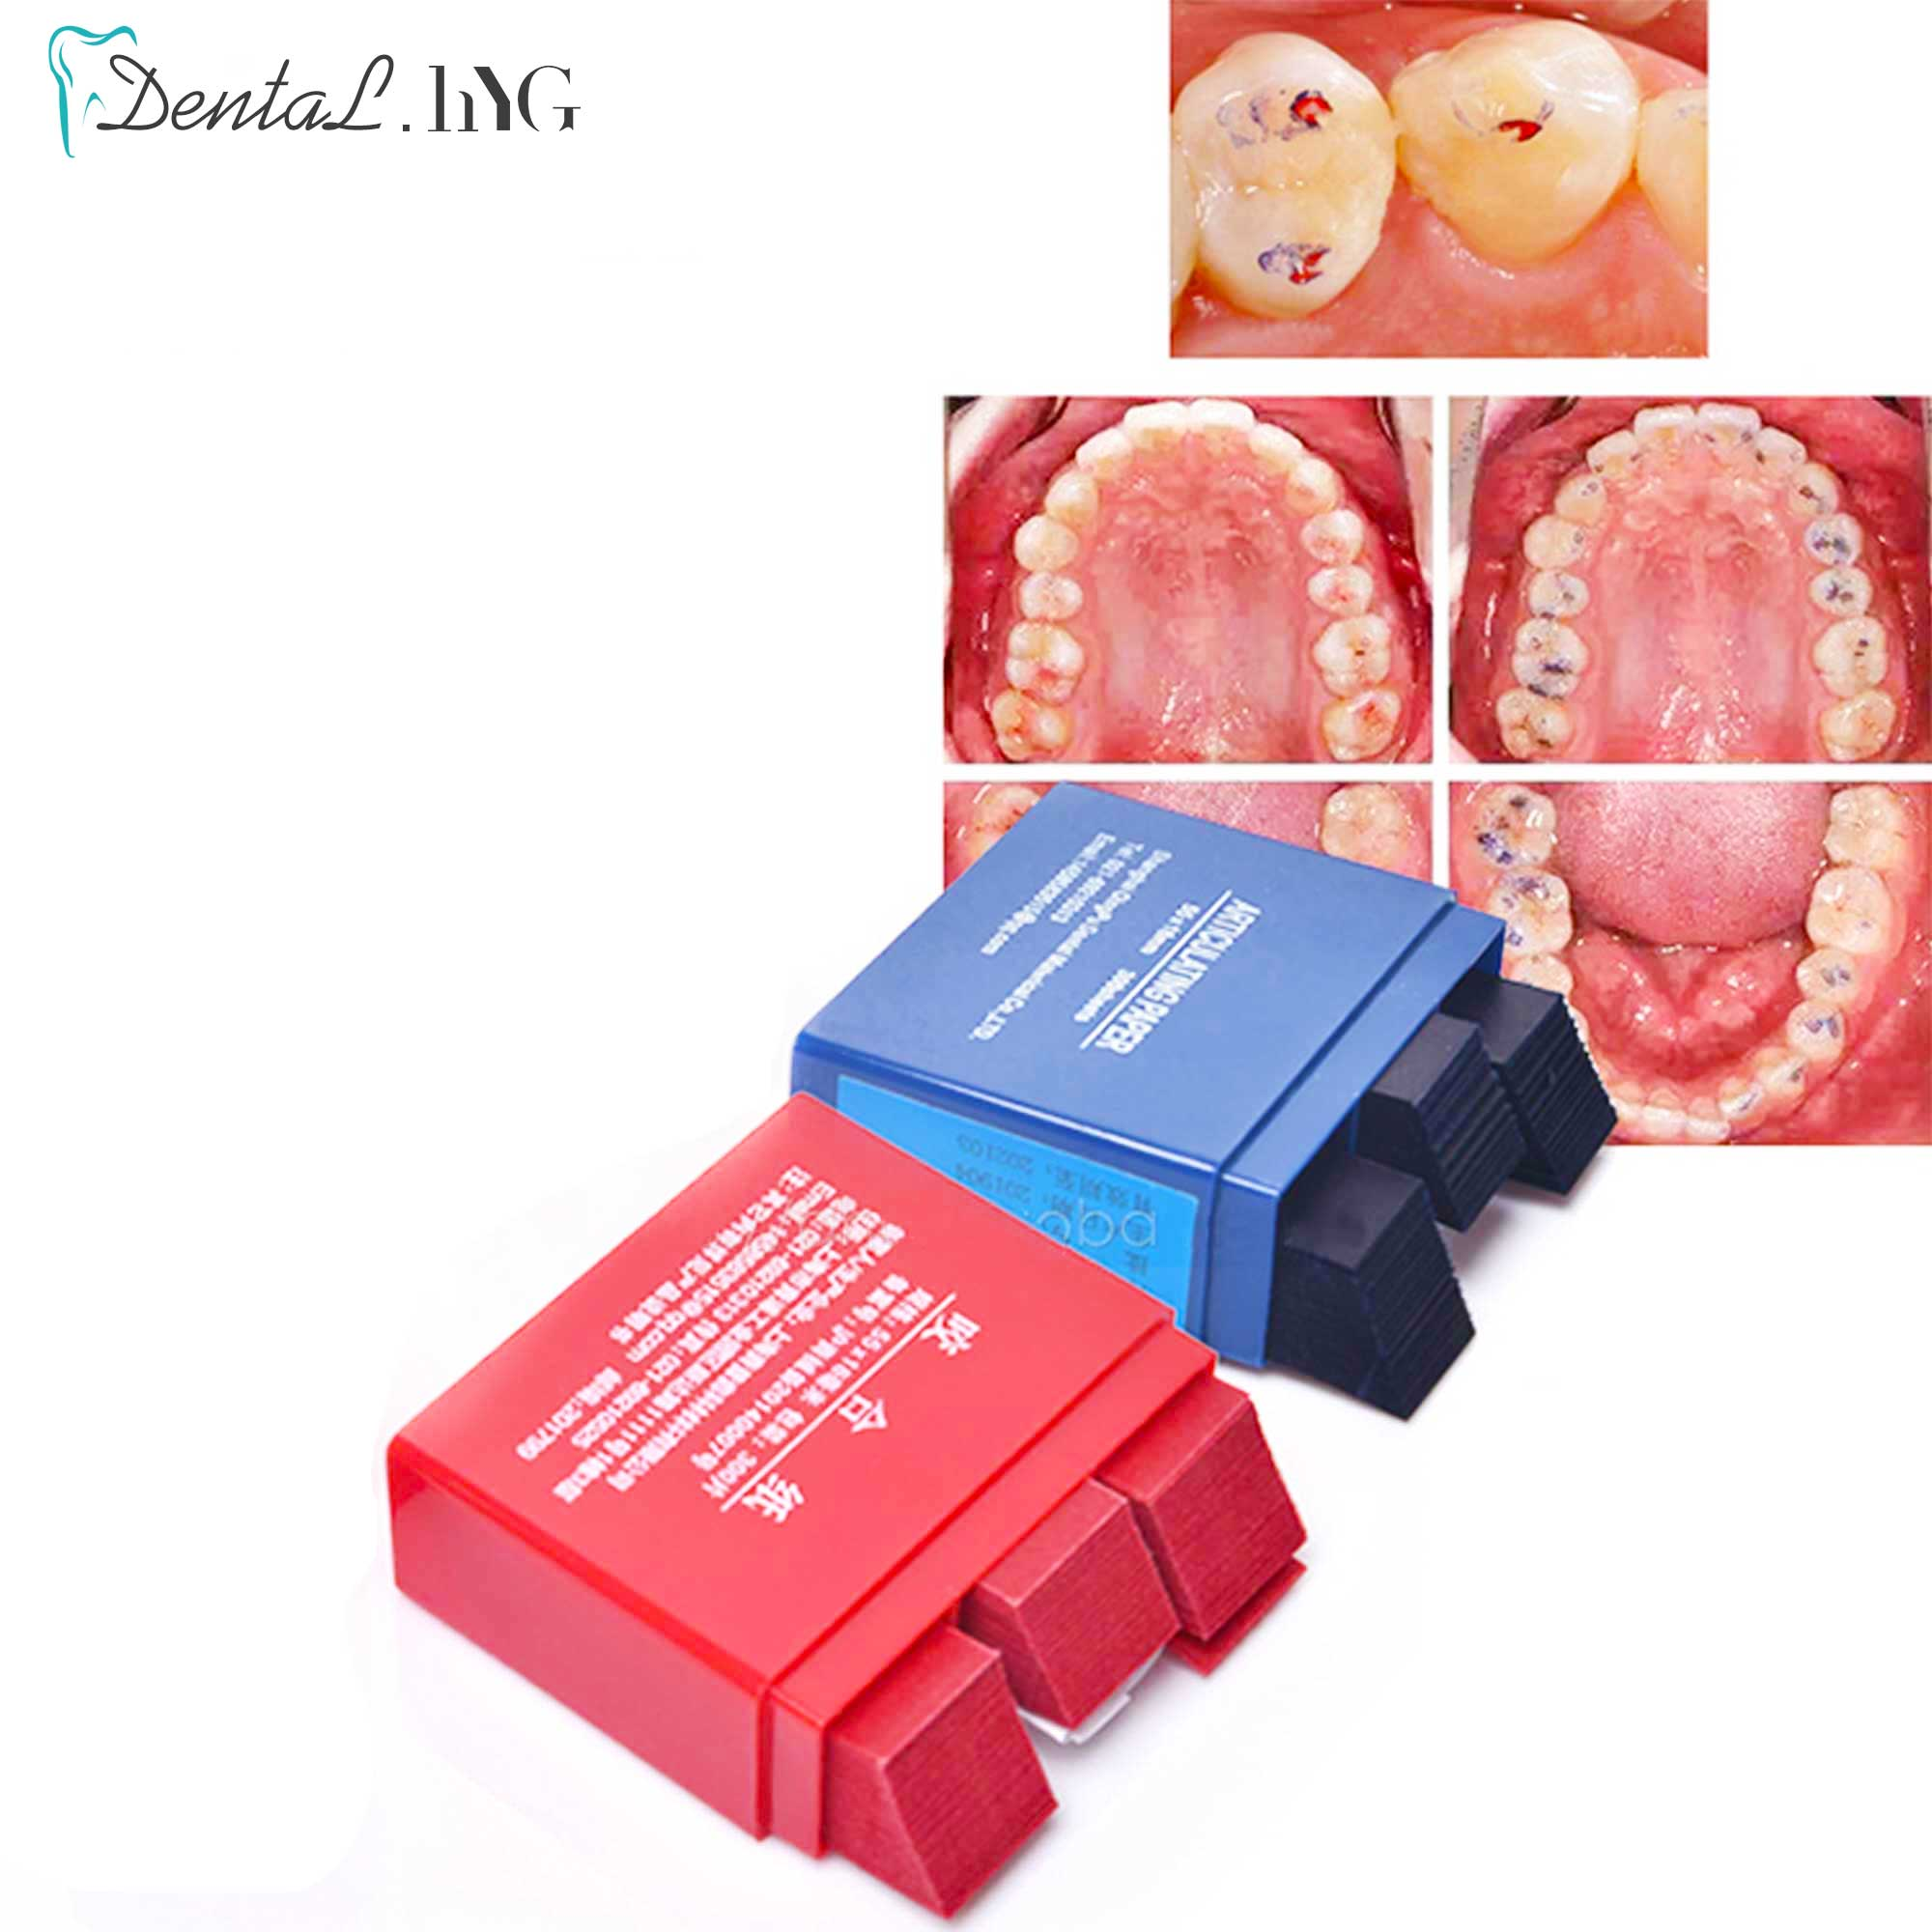 7.2*6.2*2.3cm Red/Blue 300 Sheet/Box Dental Articulating Paper Strips Dental Lab Product Tool Oral Teeth Care Whitening Material